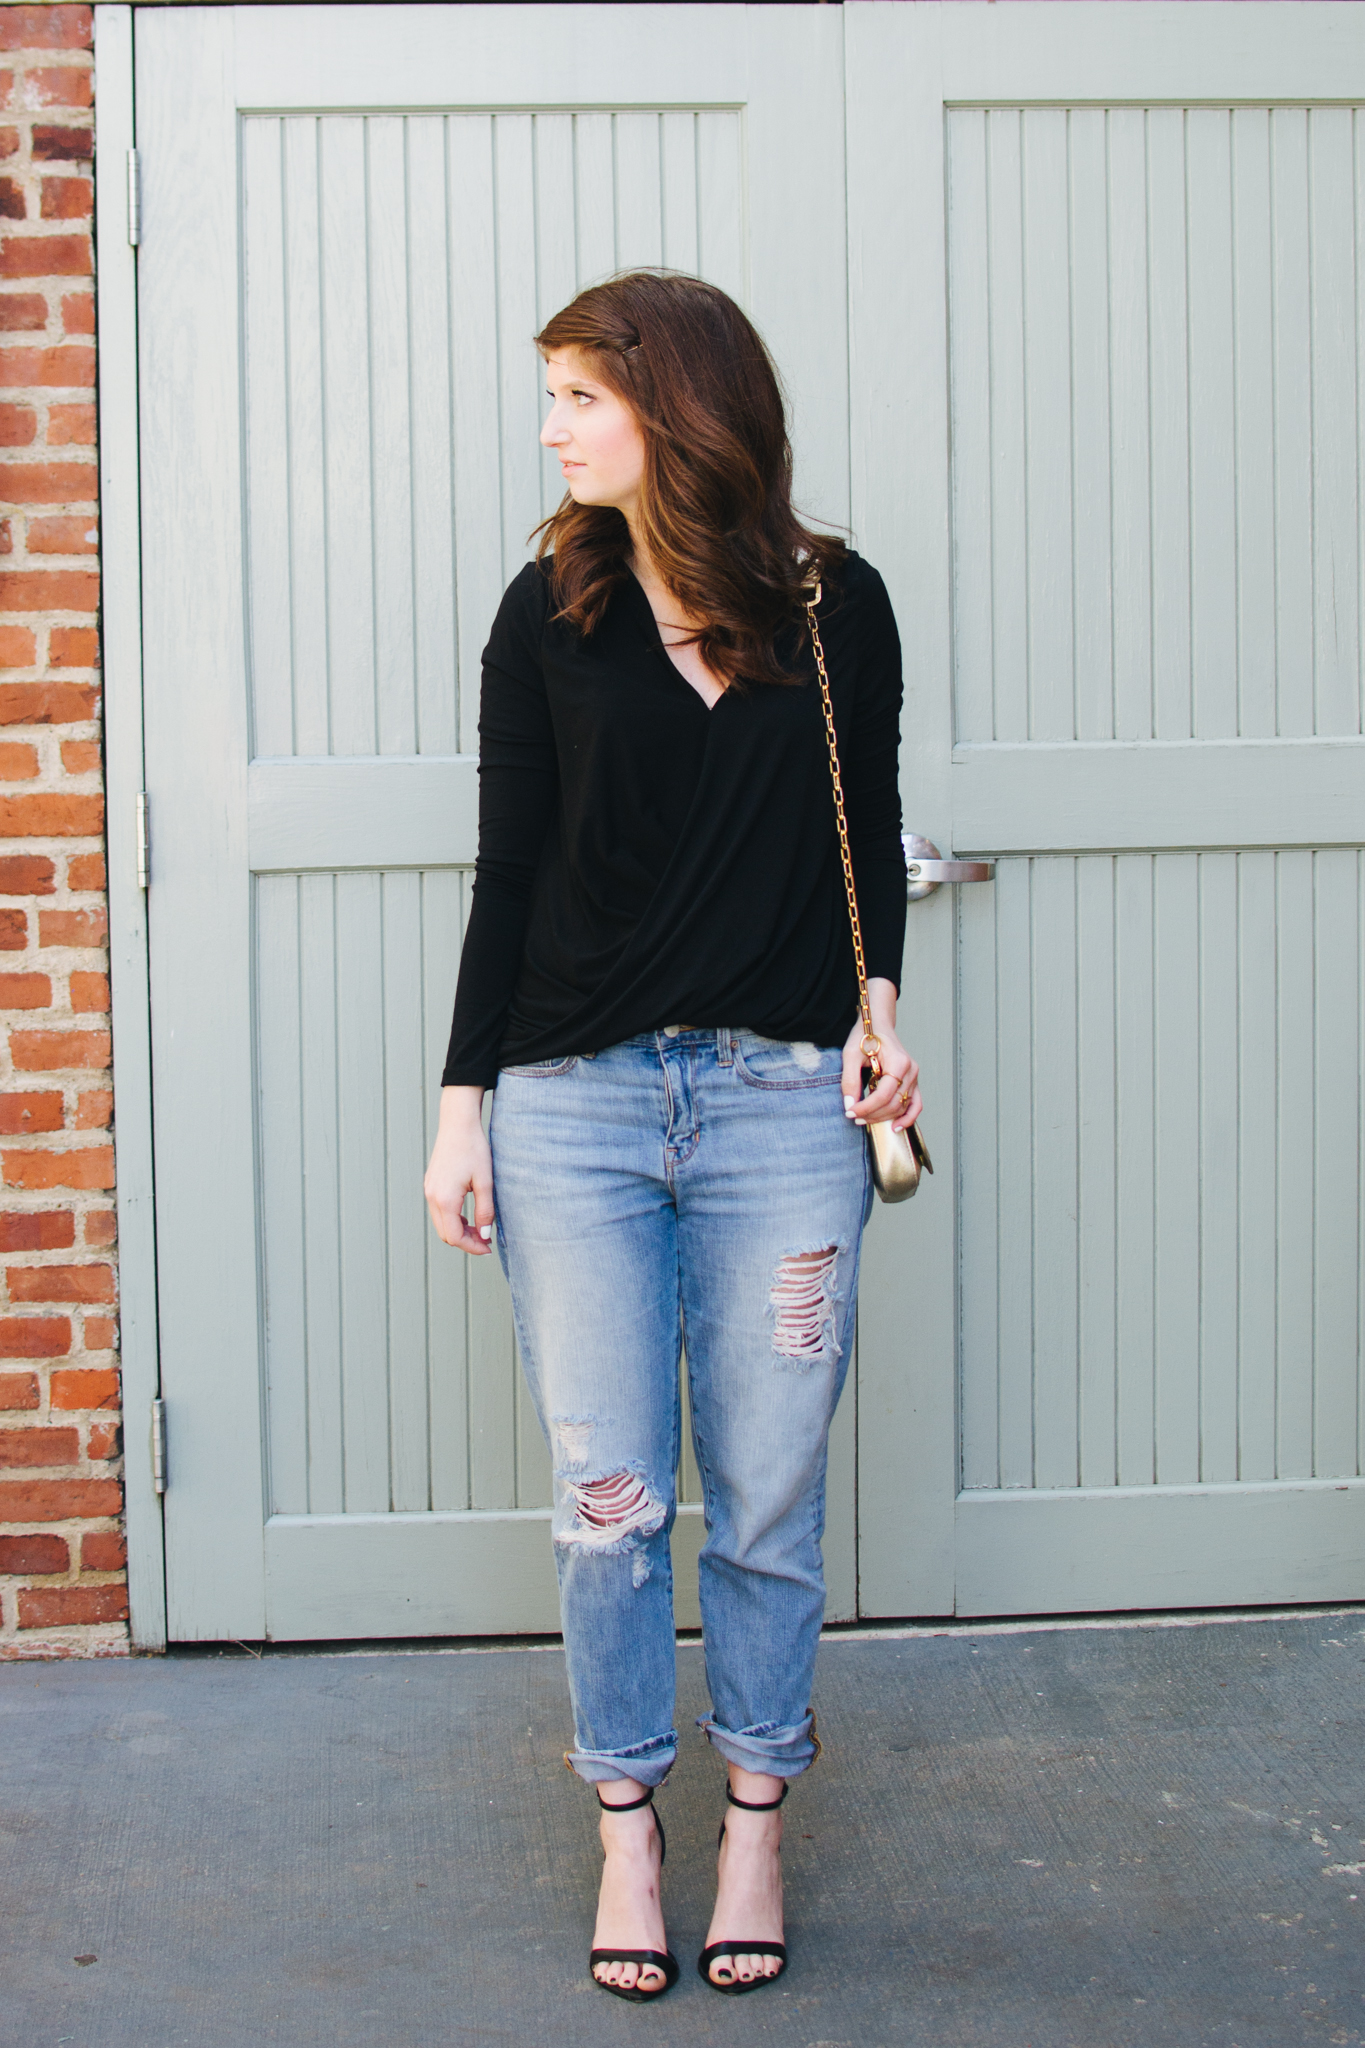 outfit: the perfect black top